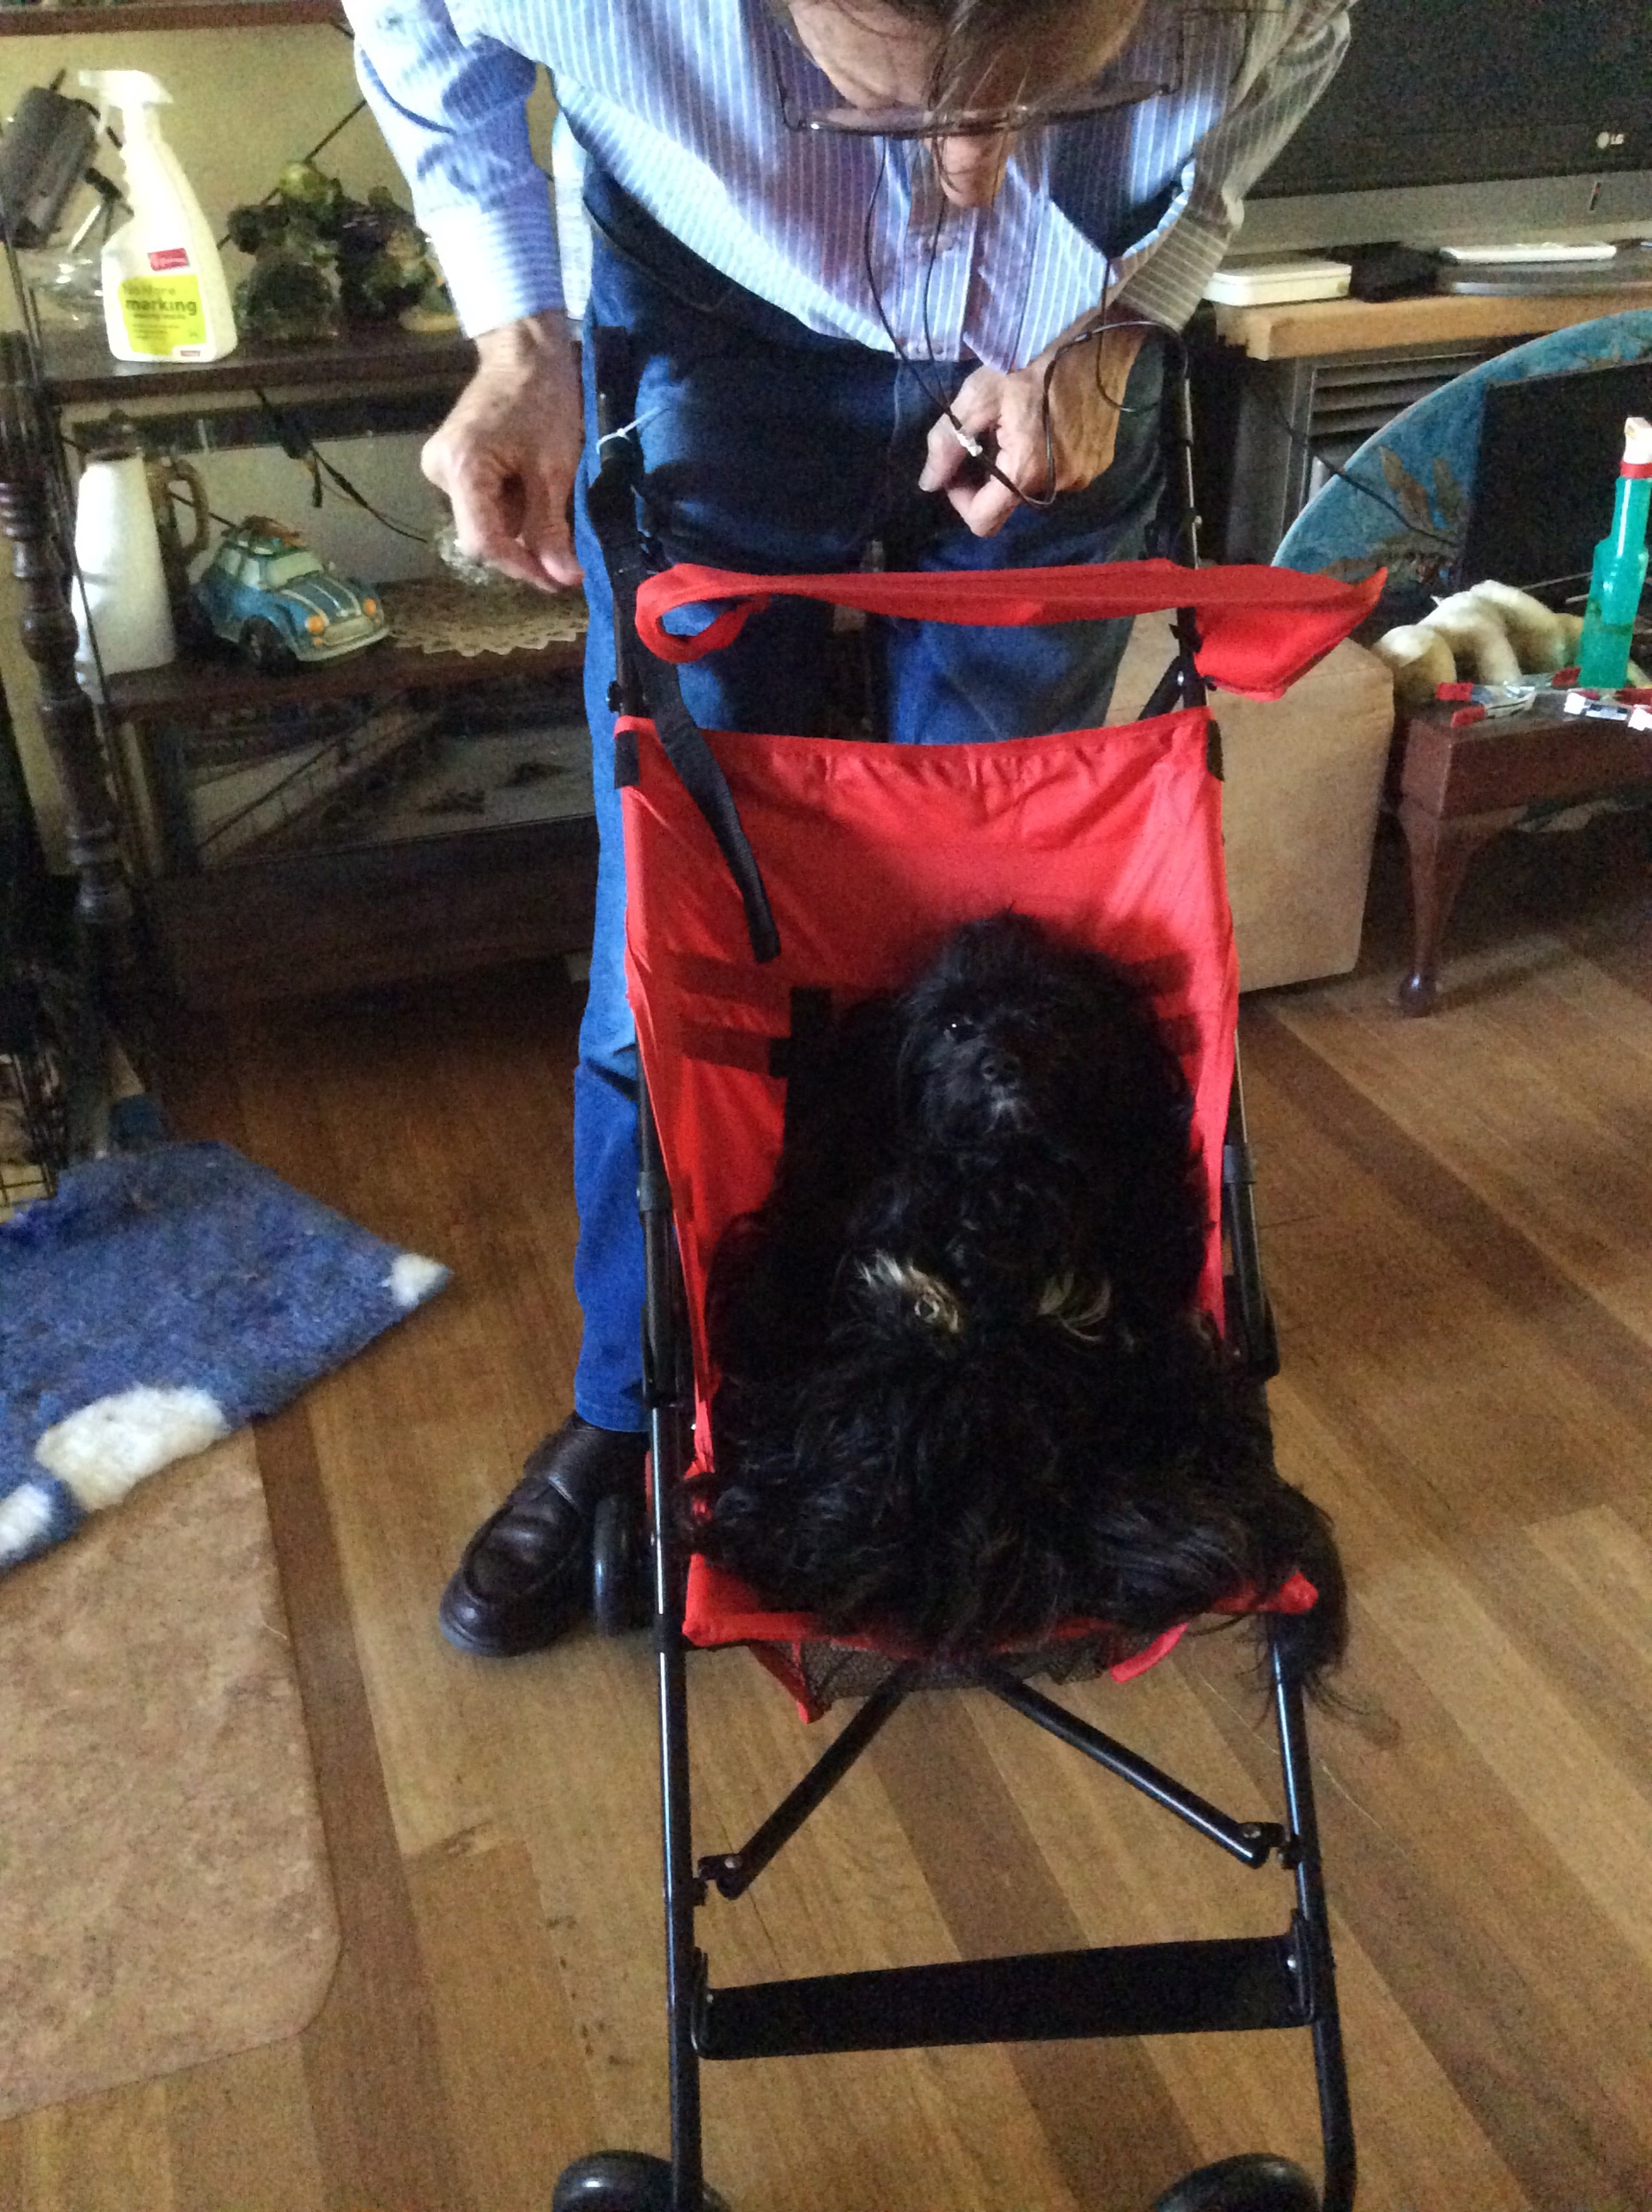 Ted, trying out the stroller for our grandson.